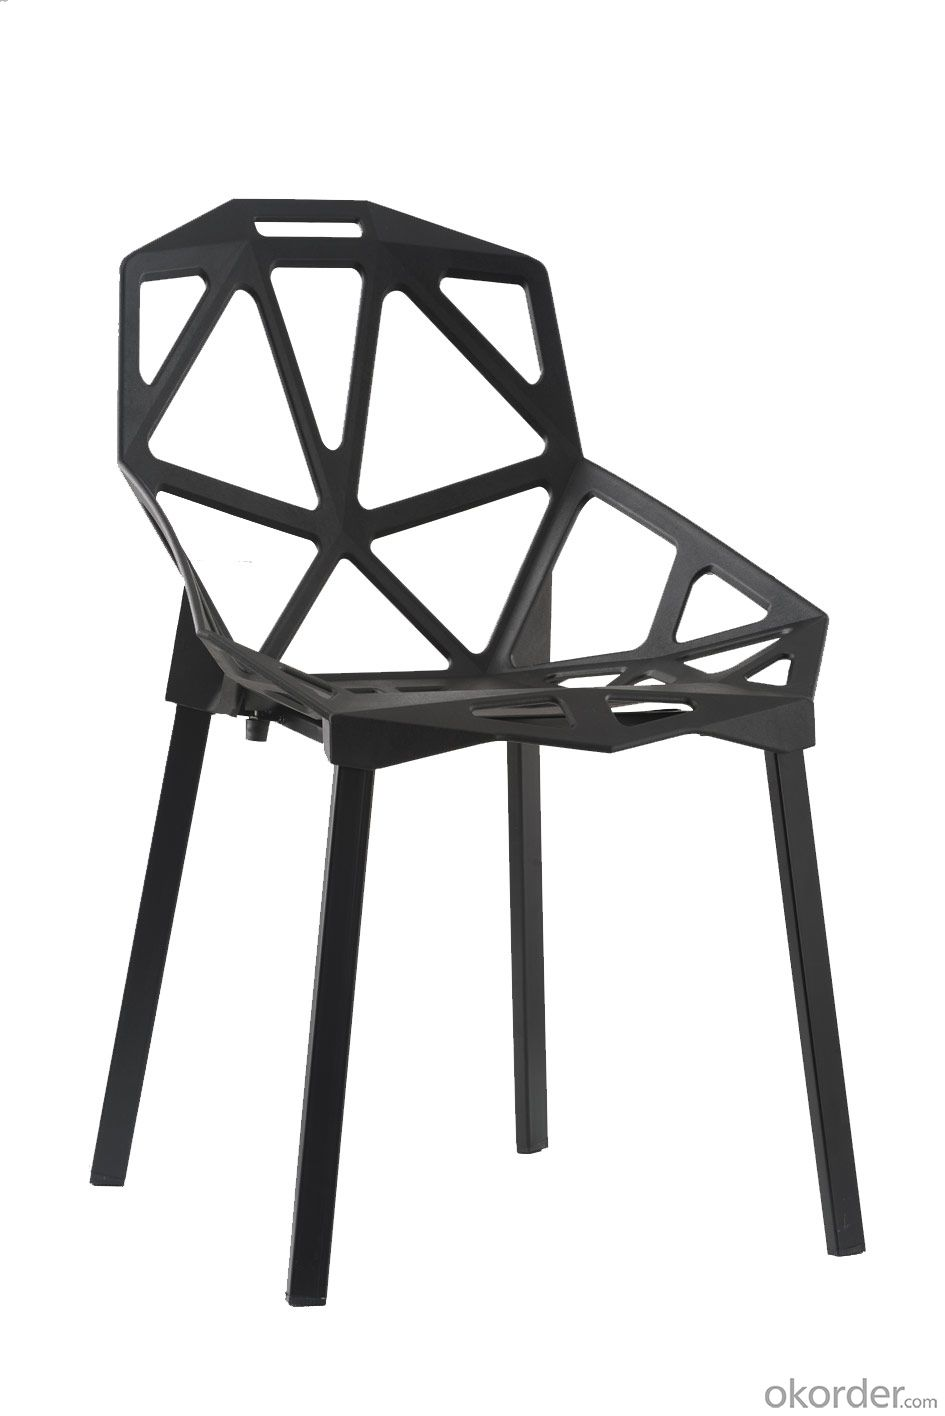 Hot sell mordern design plastic chair